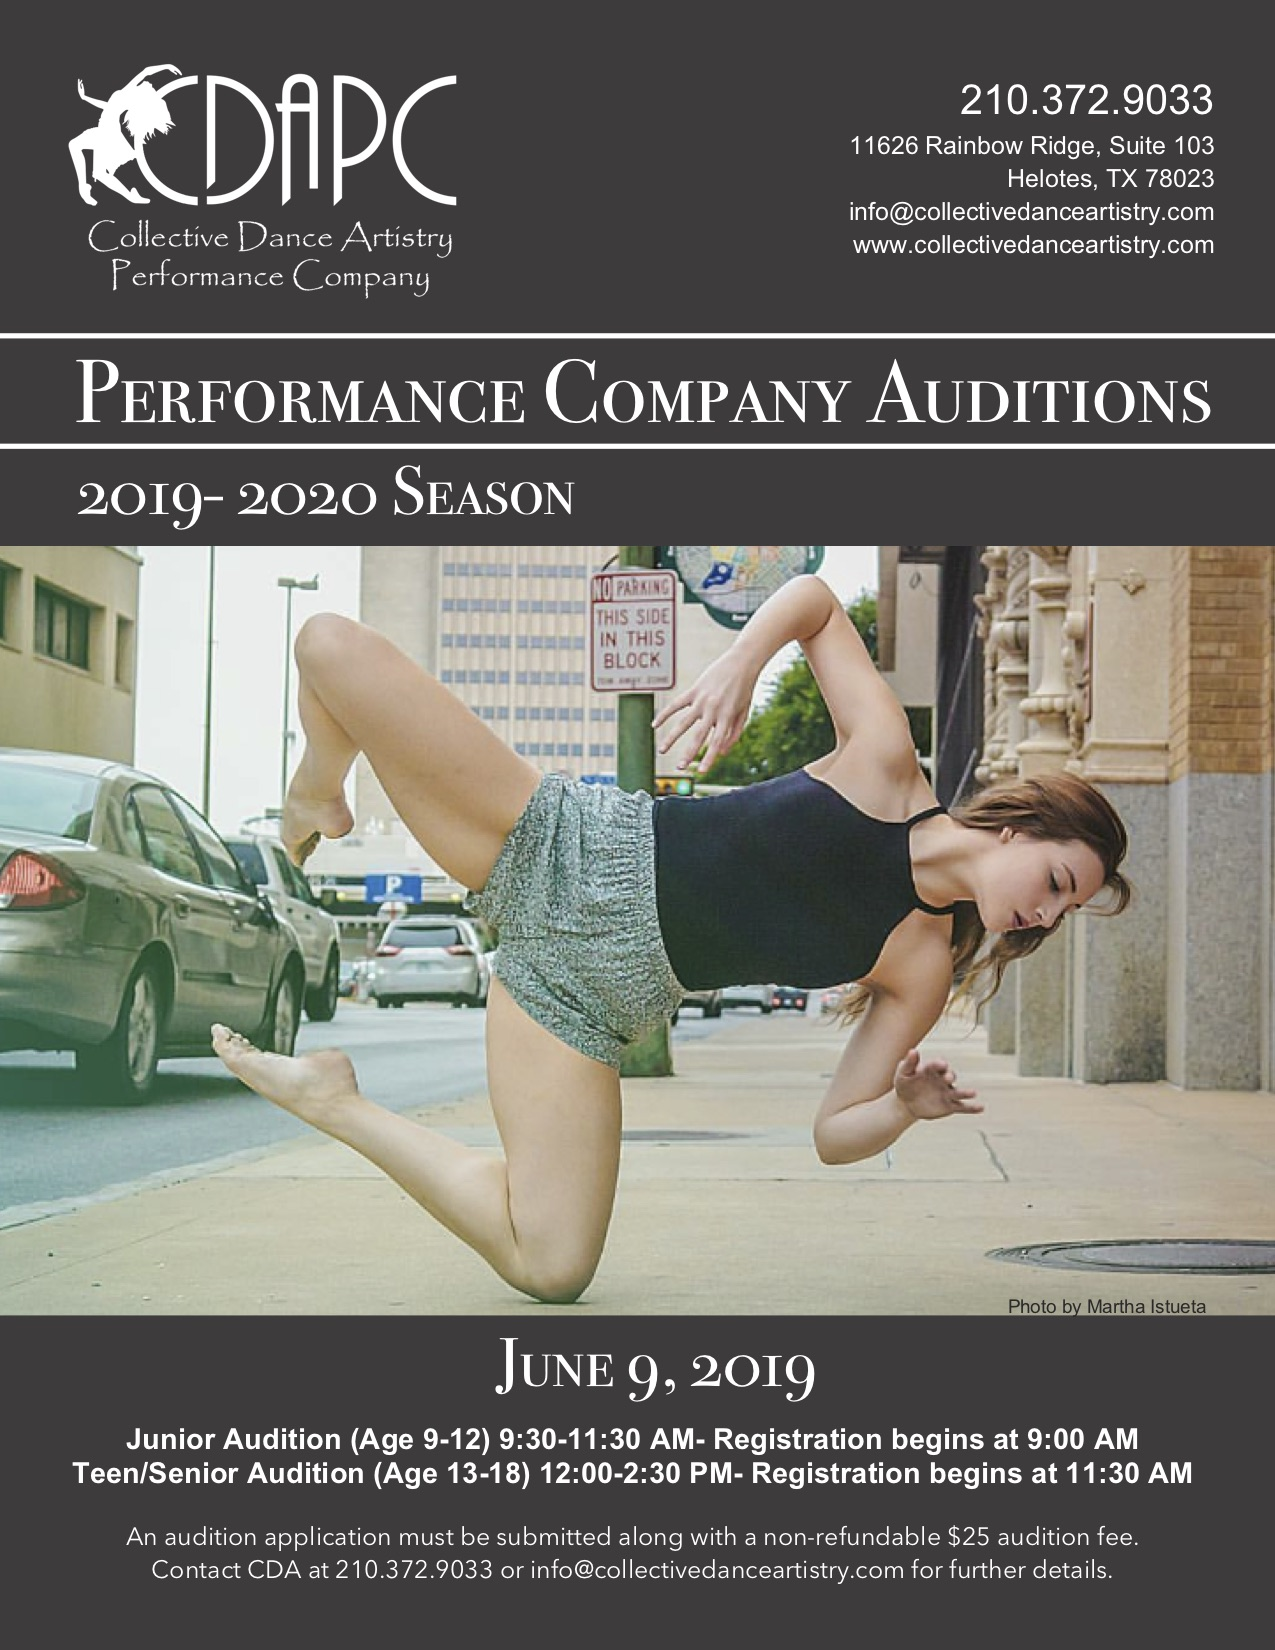 CDAPC Audition Flyer.jpg